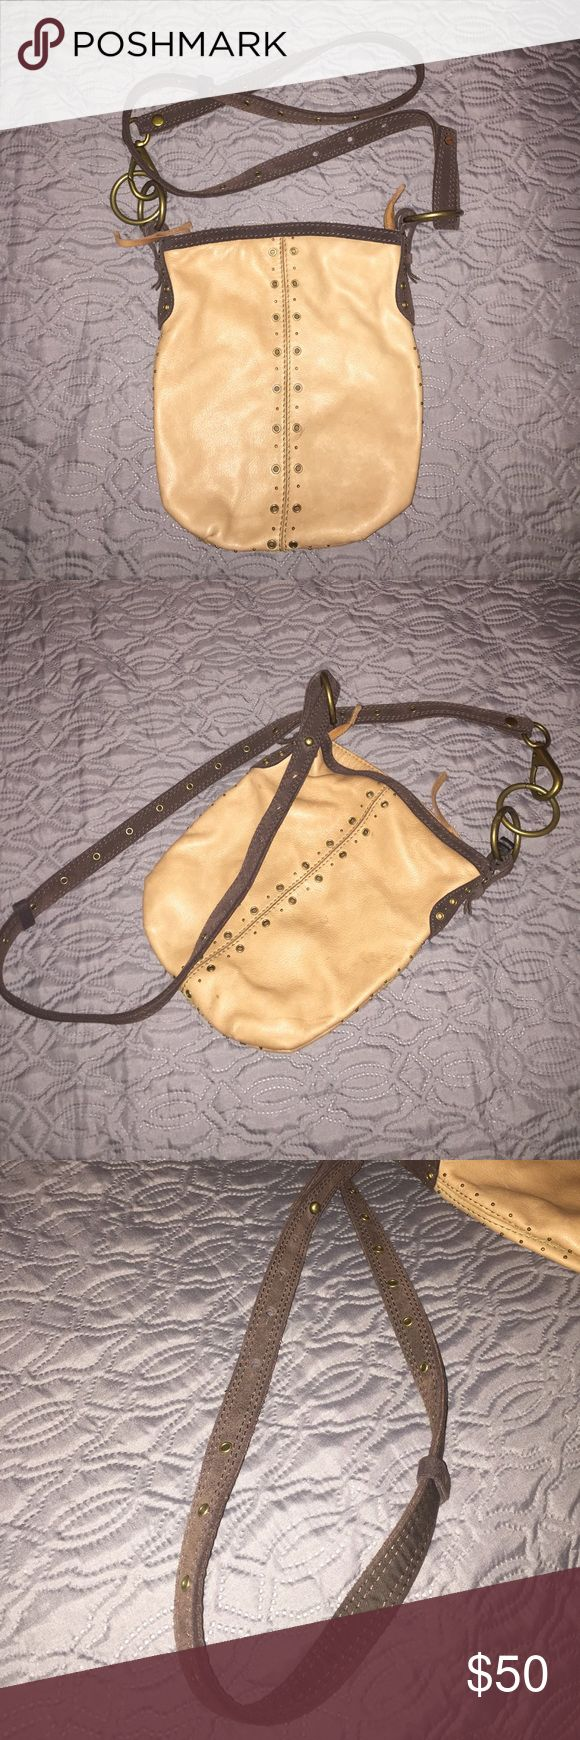 Lucky Brand Boho Purse Super cute crossbody, Lucky Brand, purse. All leather and so chic, you won't mind the missing hardware on the strap (pictured). Lucky Brand Bags Crossbody Bags